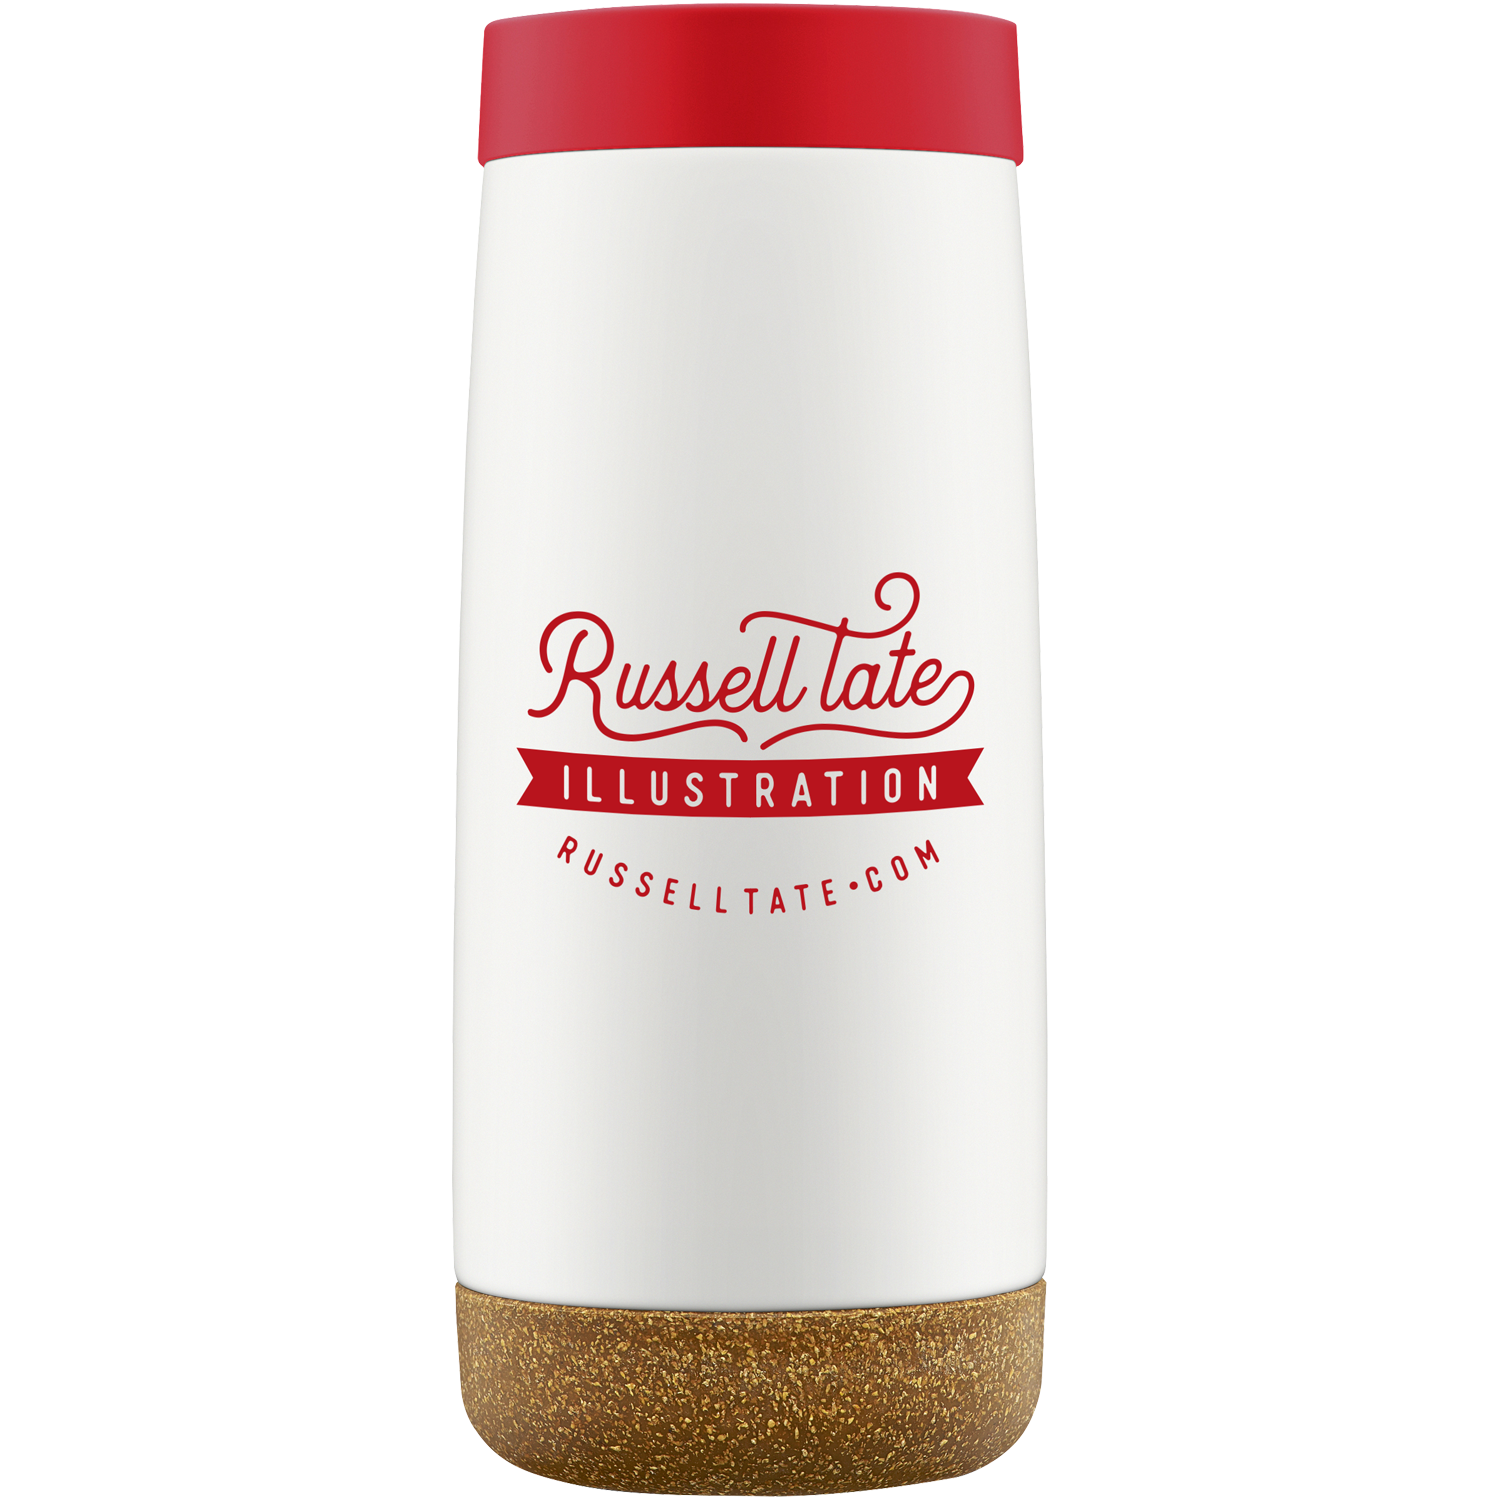 Cole 16oz Insulated Stainless Steel Travel Mug Branded